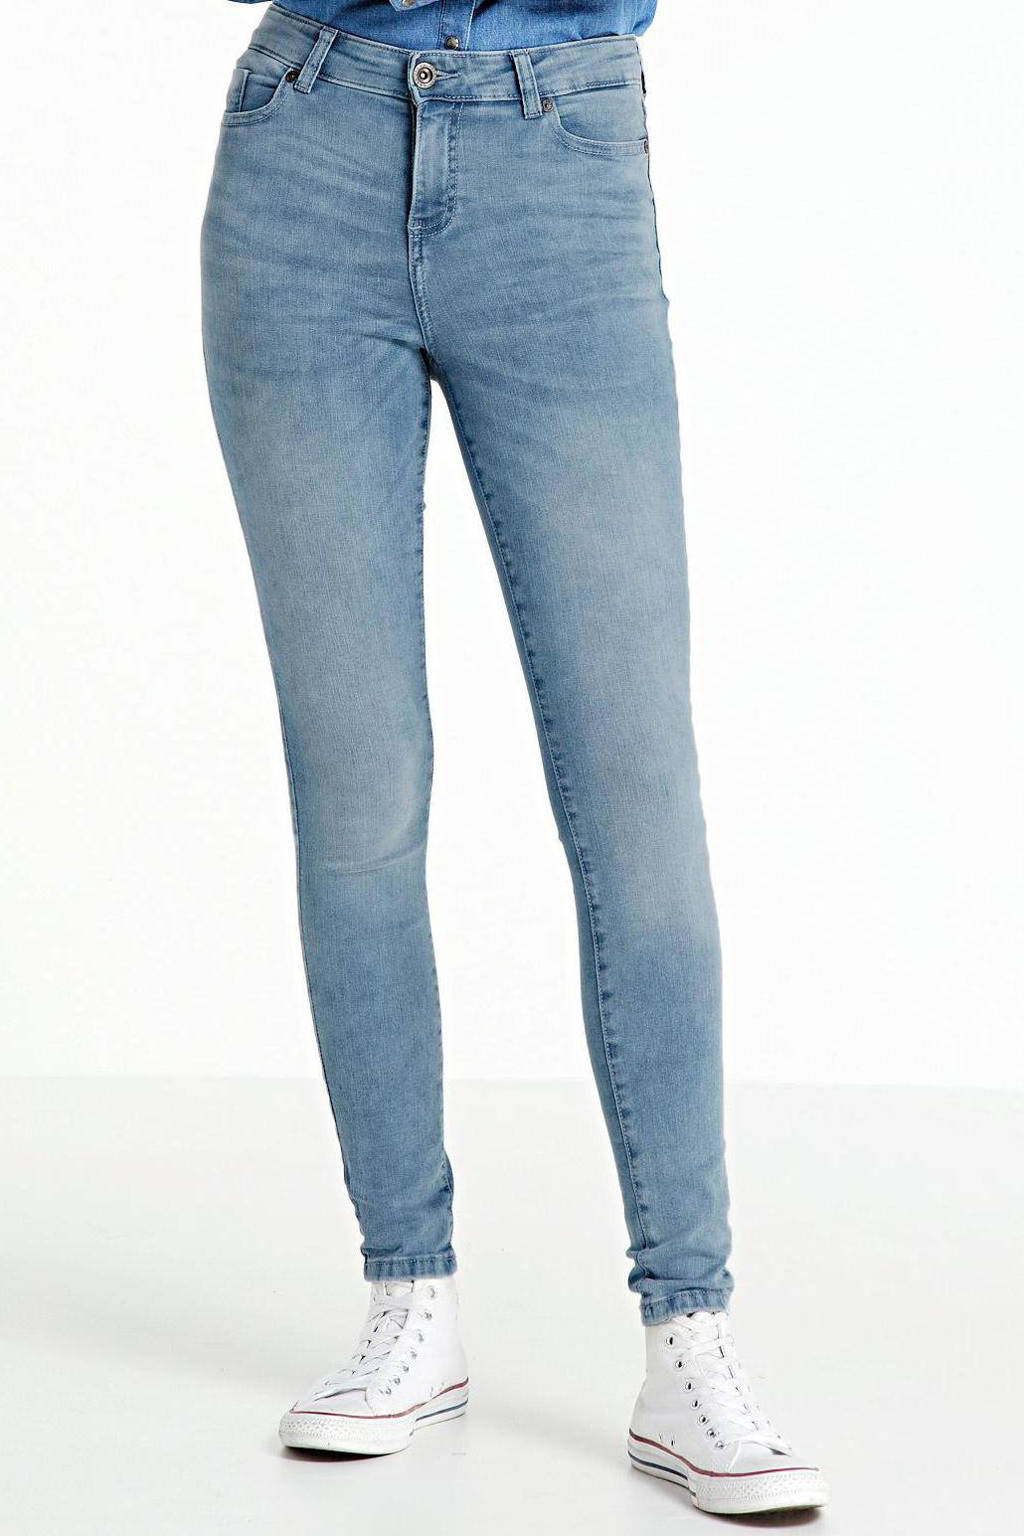 Cars skinny jeans Ophelia bleached used, Bleached used